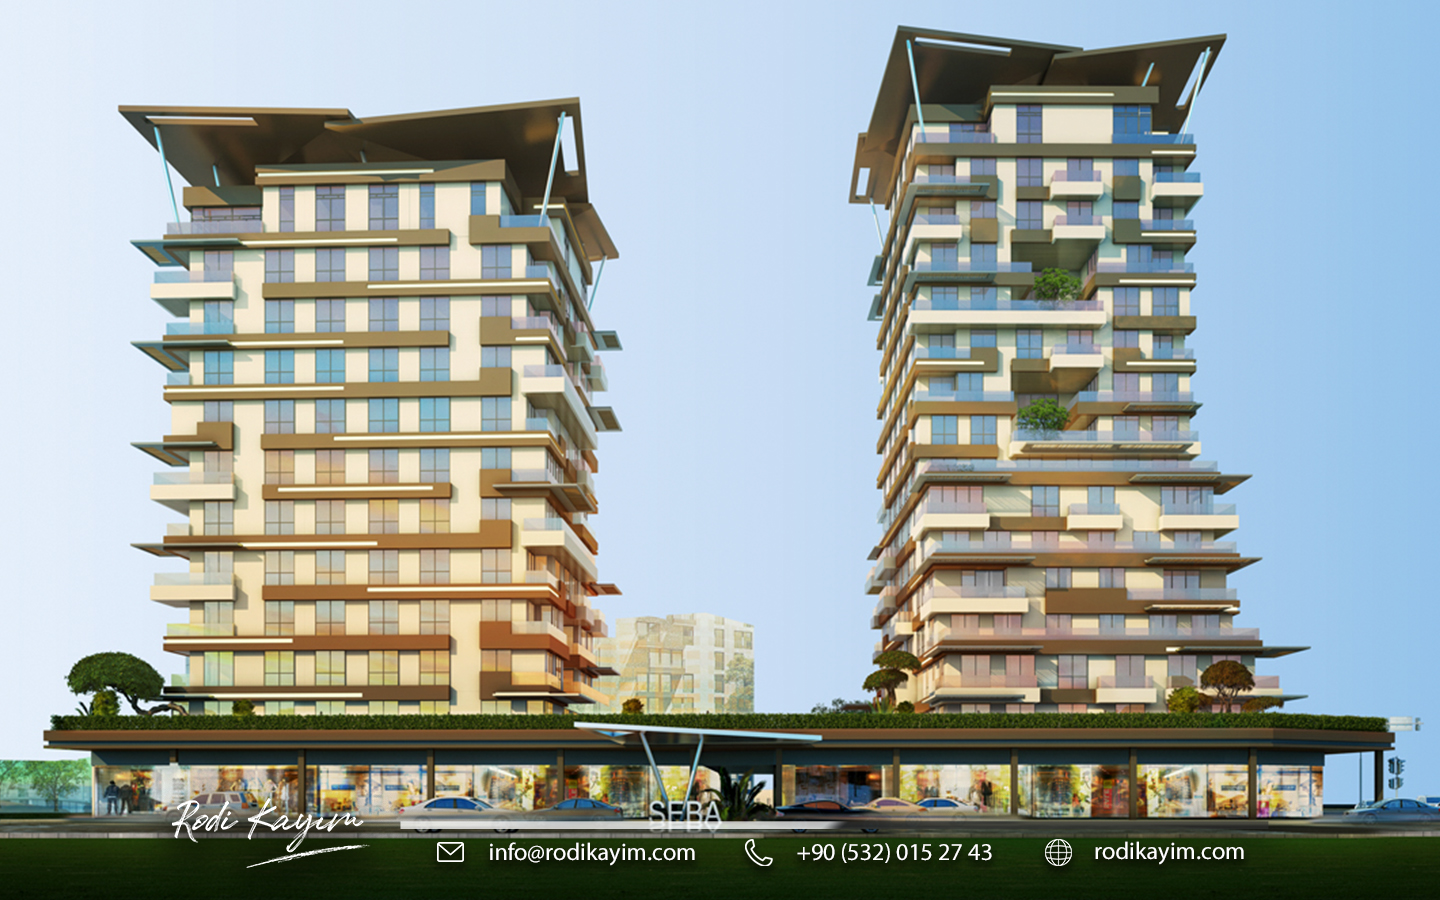 Seba Suites Istanbul Real Estate Project in Istanbul 11